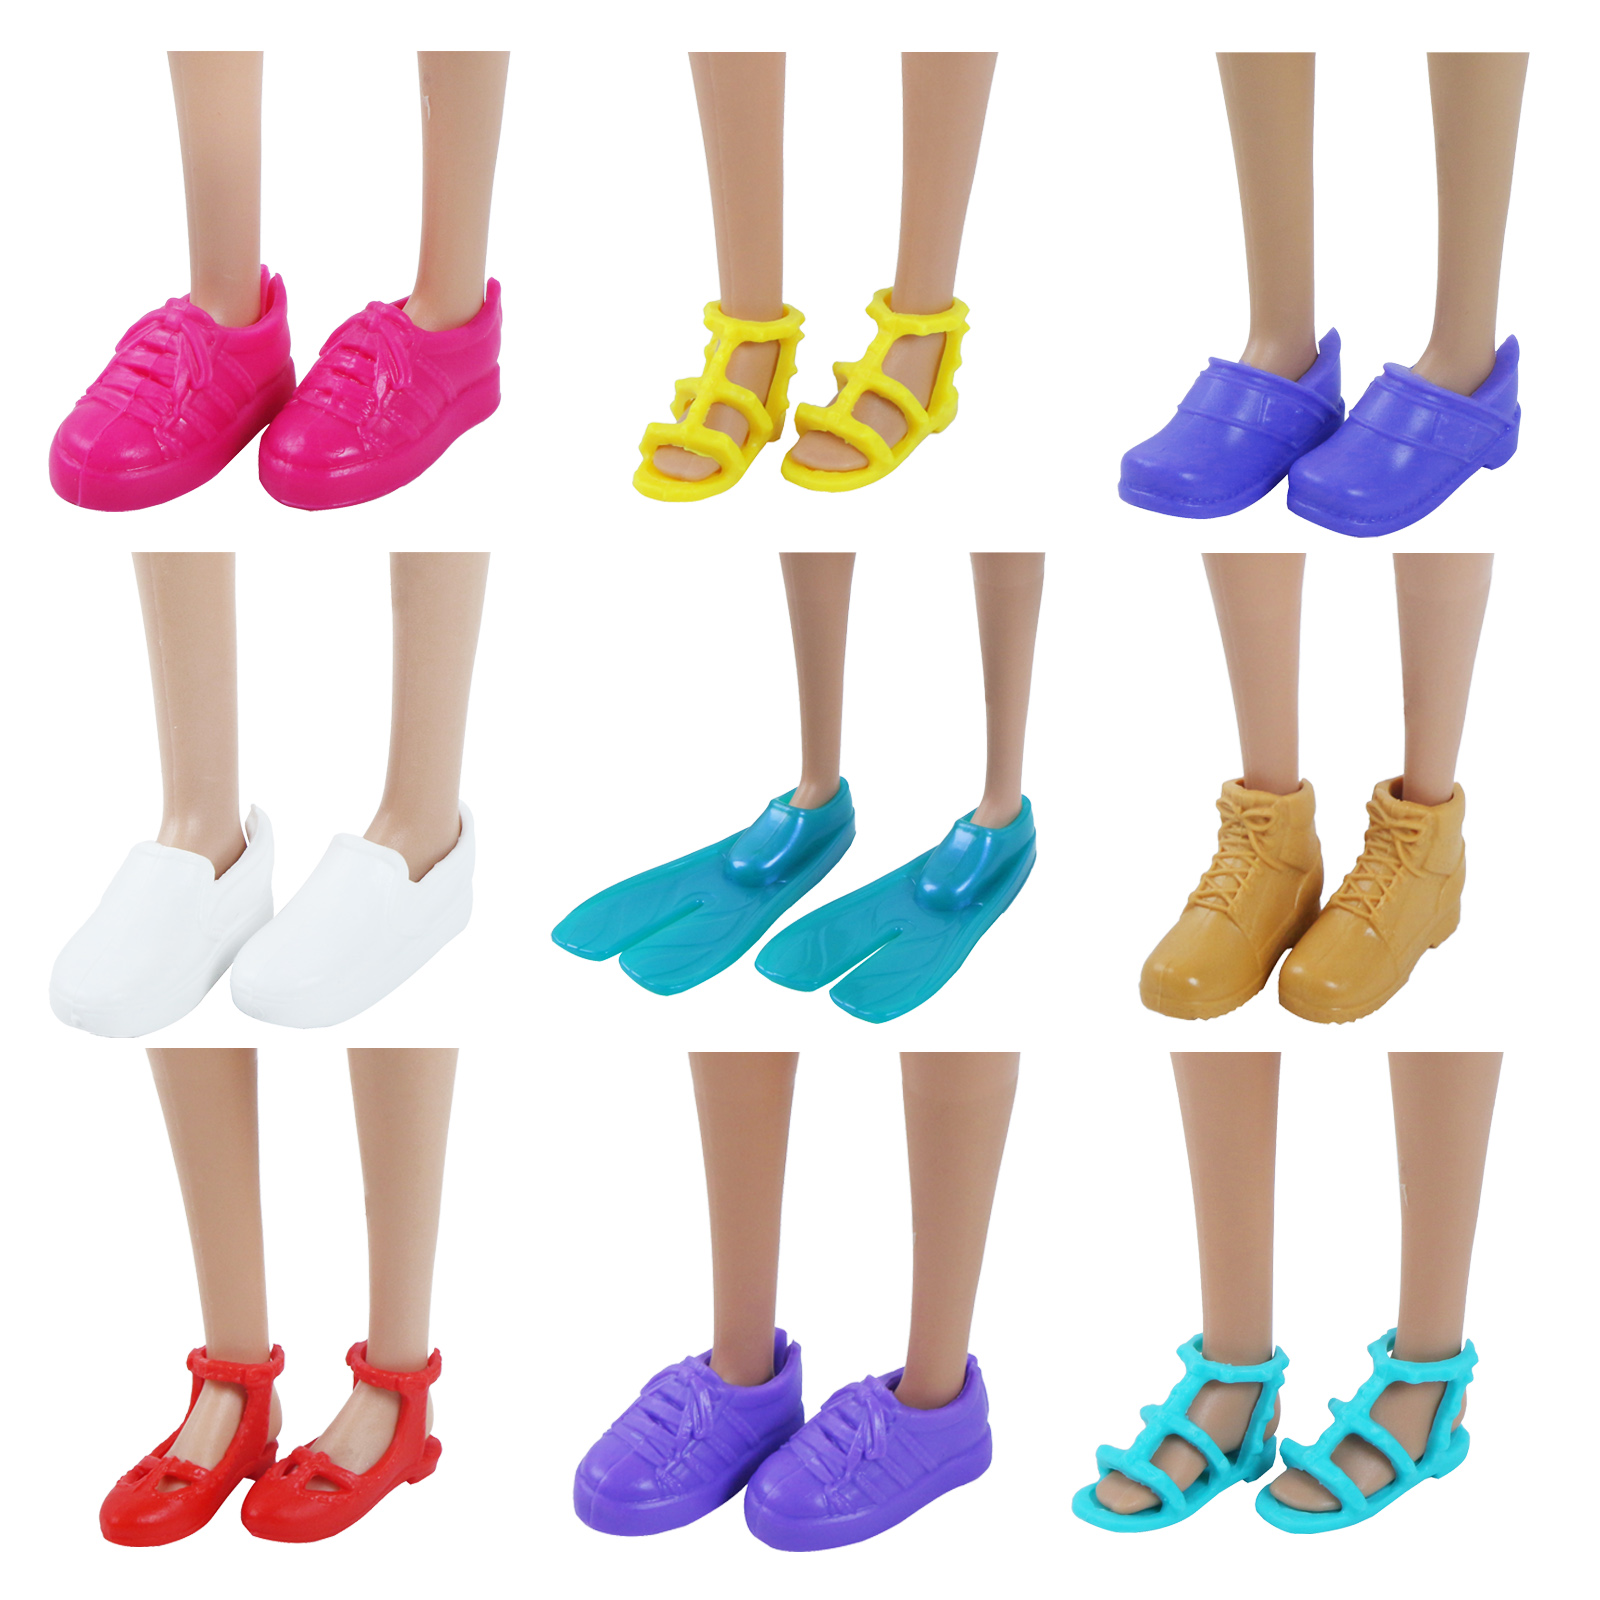 High Quality Fashion Mini Flat Shoes Cute Mixed Style Colorful Sport Sandals Ballet Dance Shoes Accessories For Barbie Doll Toy